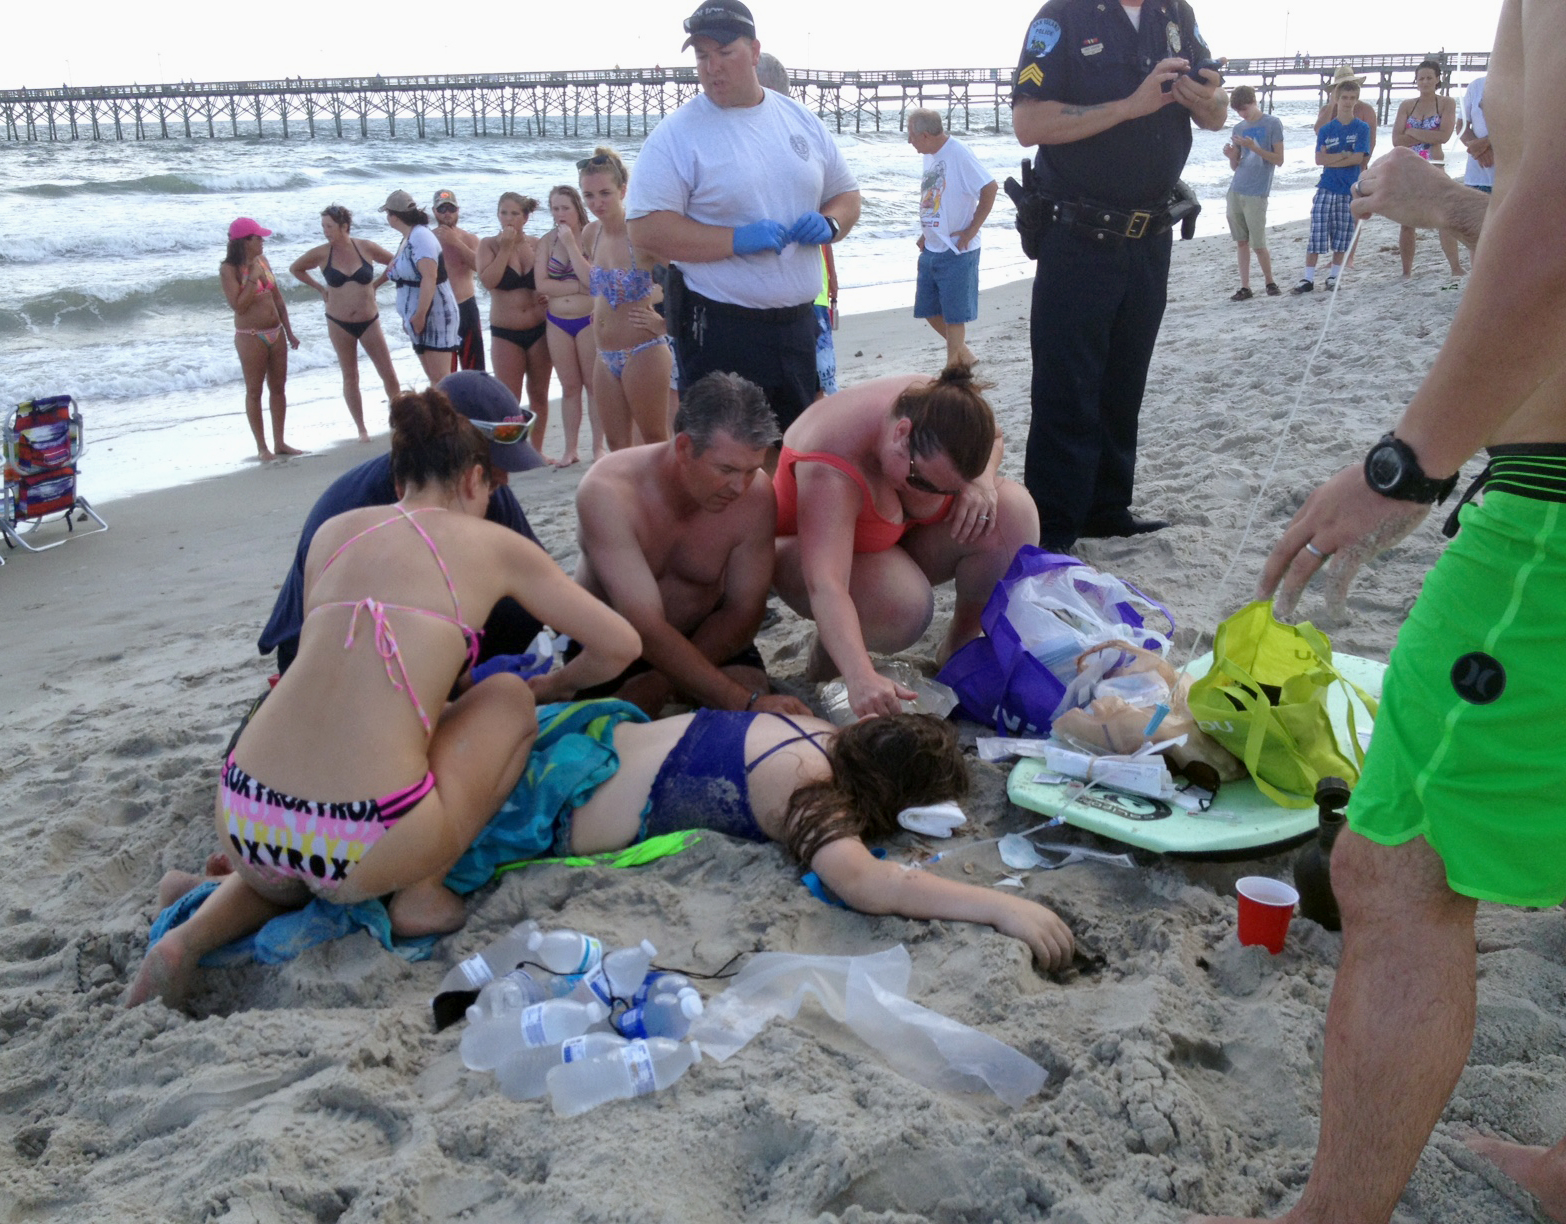 Warmer Water More Crowded Beaches Contributing To Shark Attacks